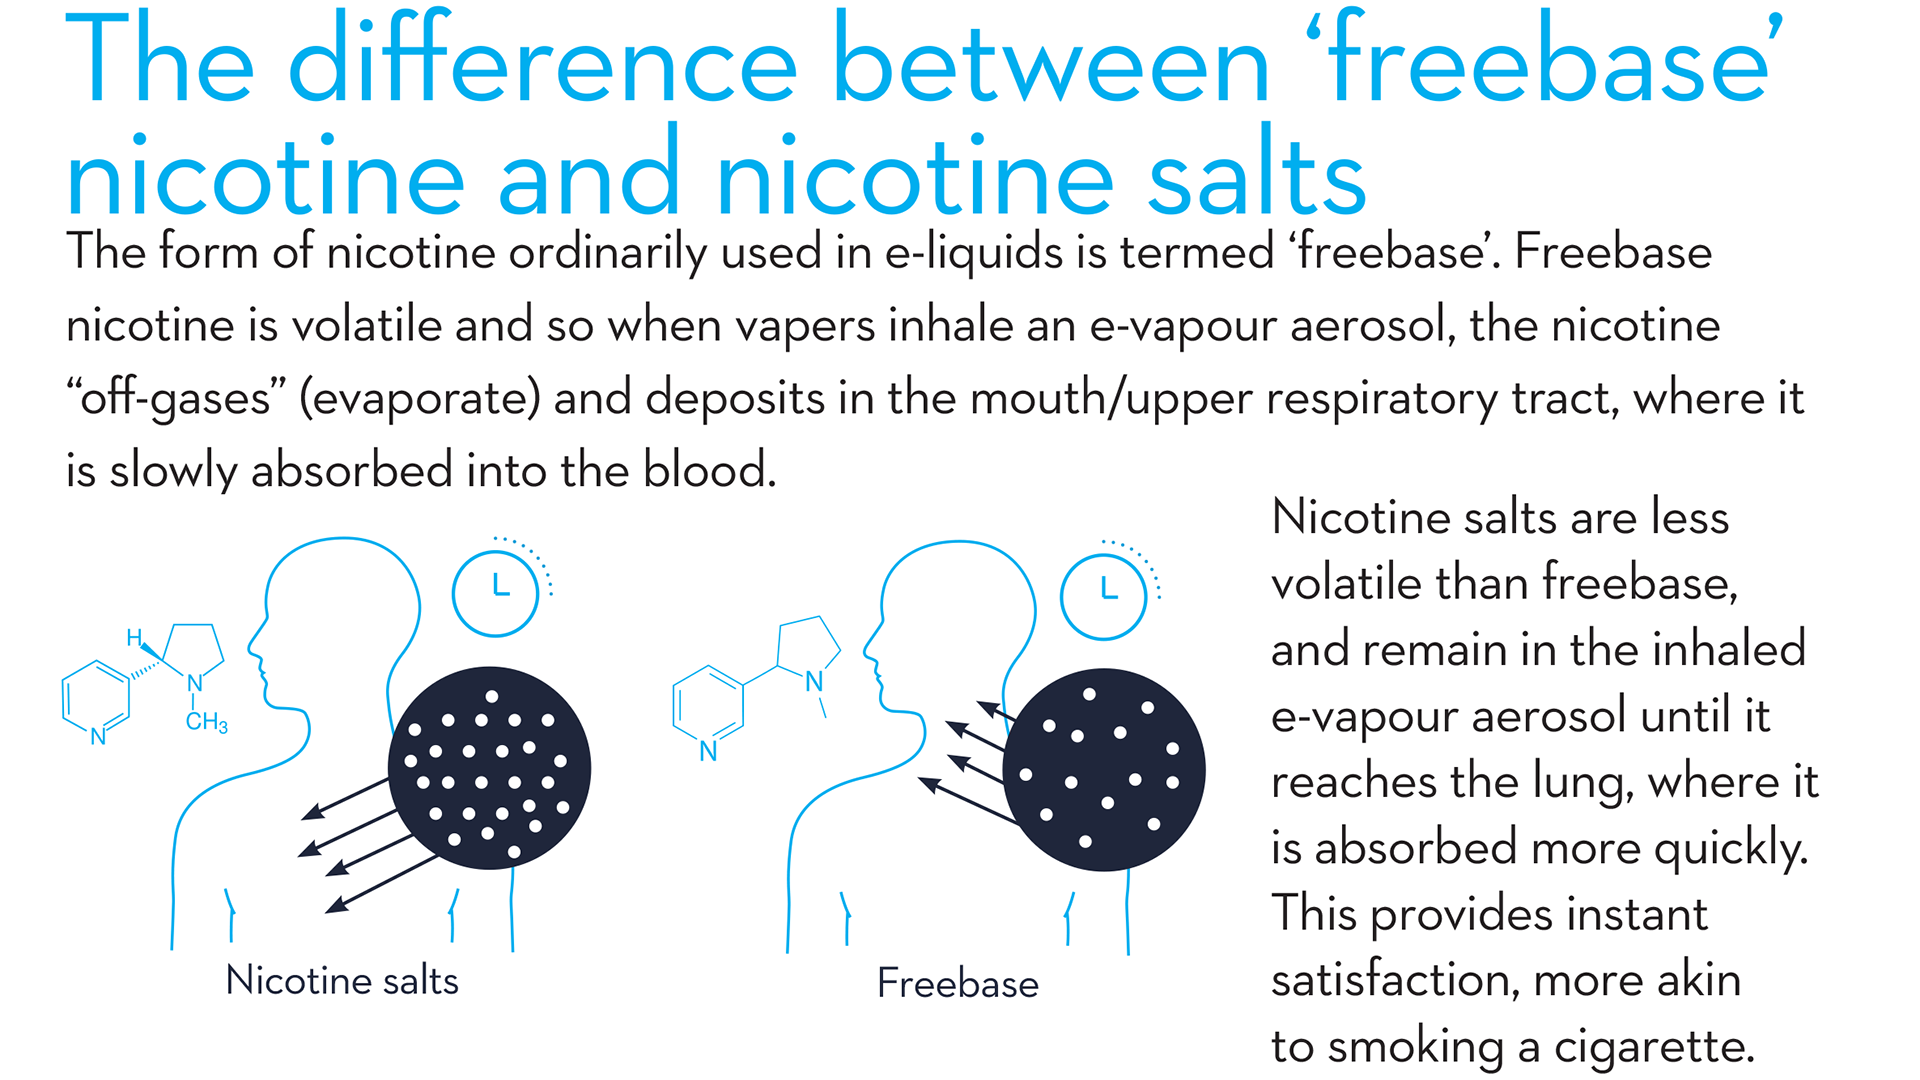 blu research suggests nicotine salts can help more adult smokers transition to vaping